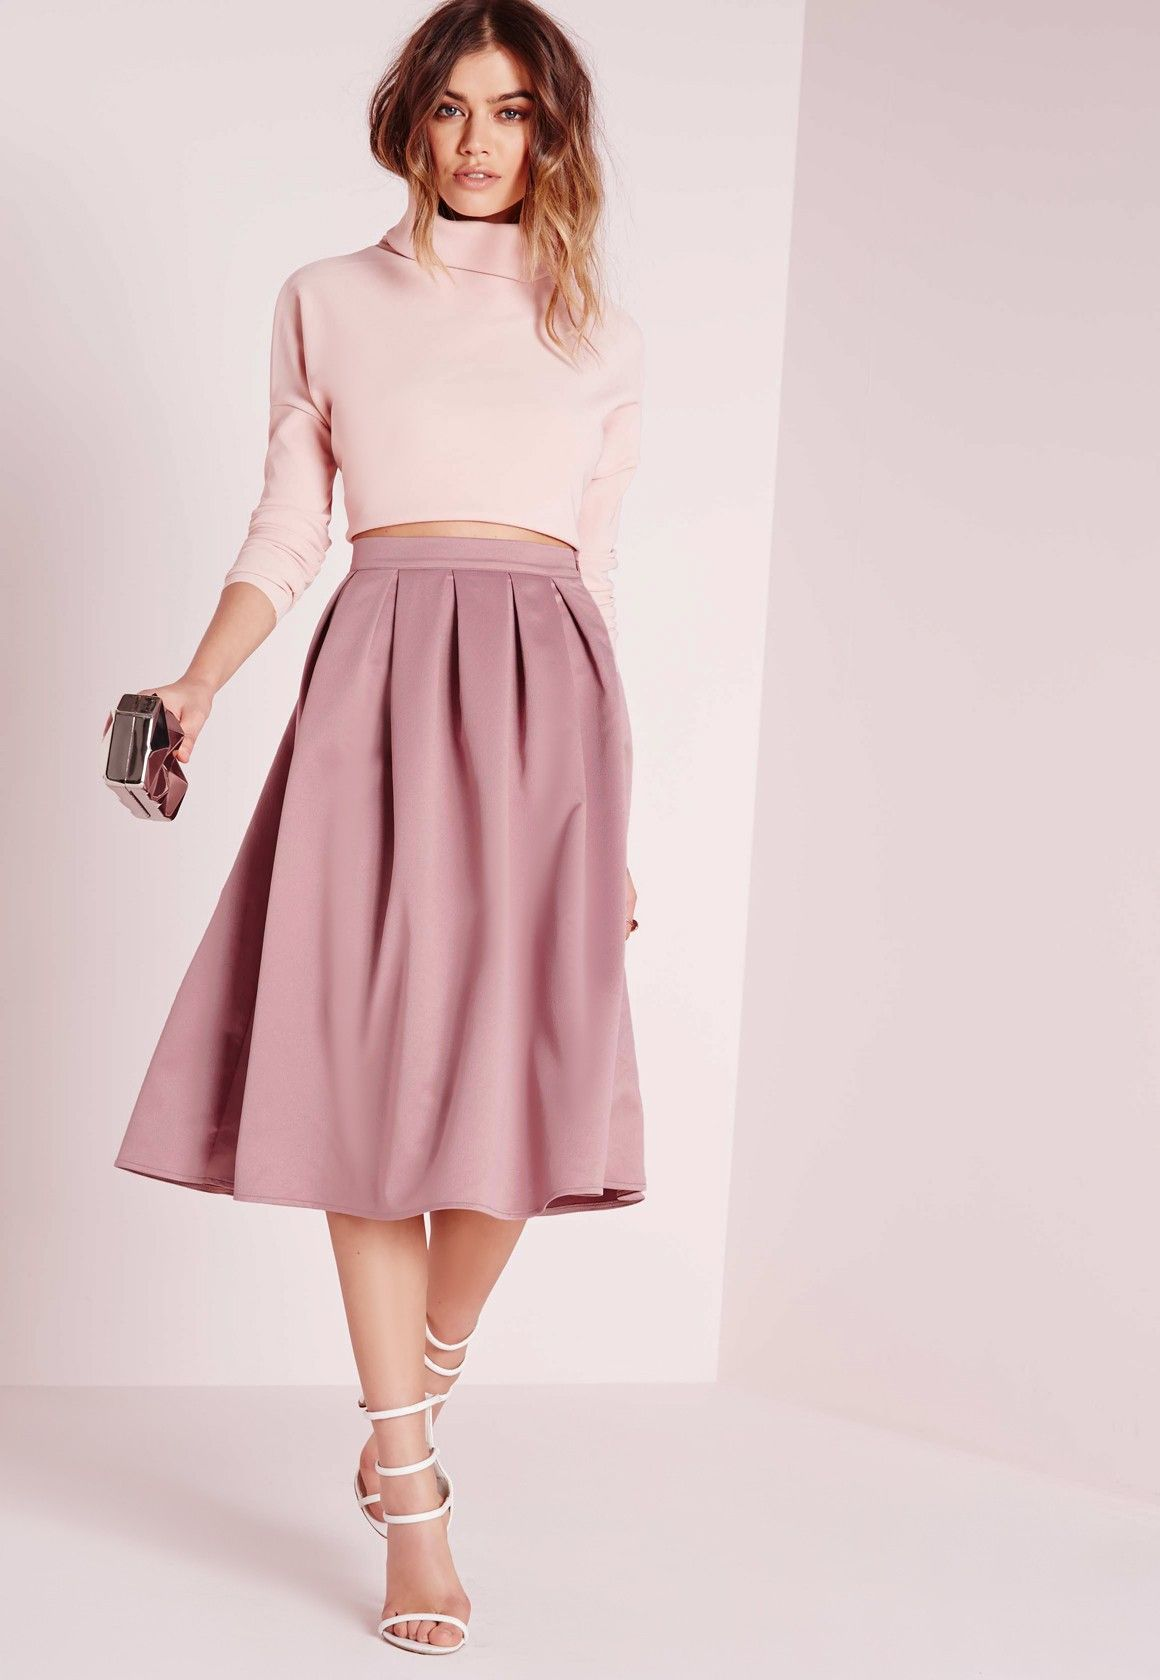 938bae656b Discover the latest skirts and trends with Missguided. From maxi skirts to  midi, mini and skater skirts. View our range and shop online today.